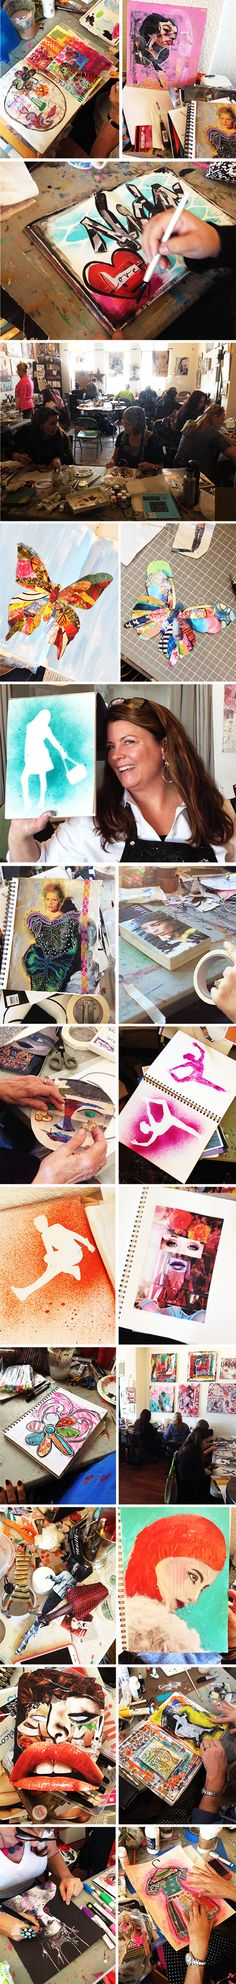 Balzer Designs - In January I taught my two-day workshop, Magazine Magic! We had a ton of fun ripping apart magazines and turning them into all sorts of things!